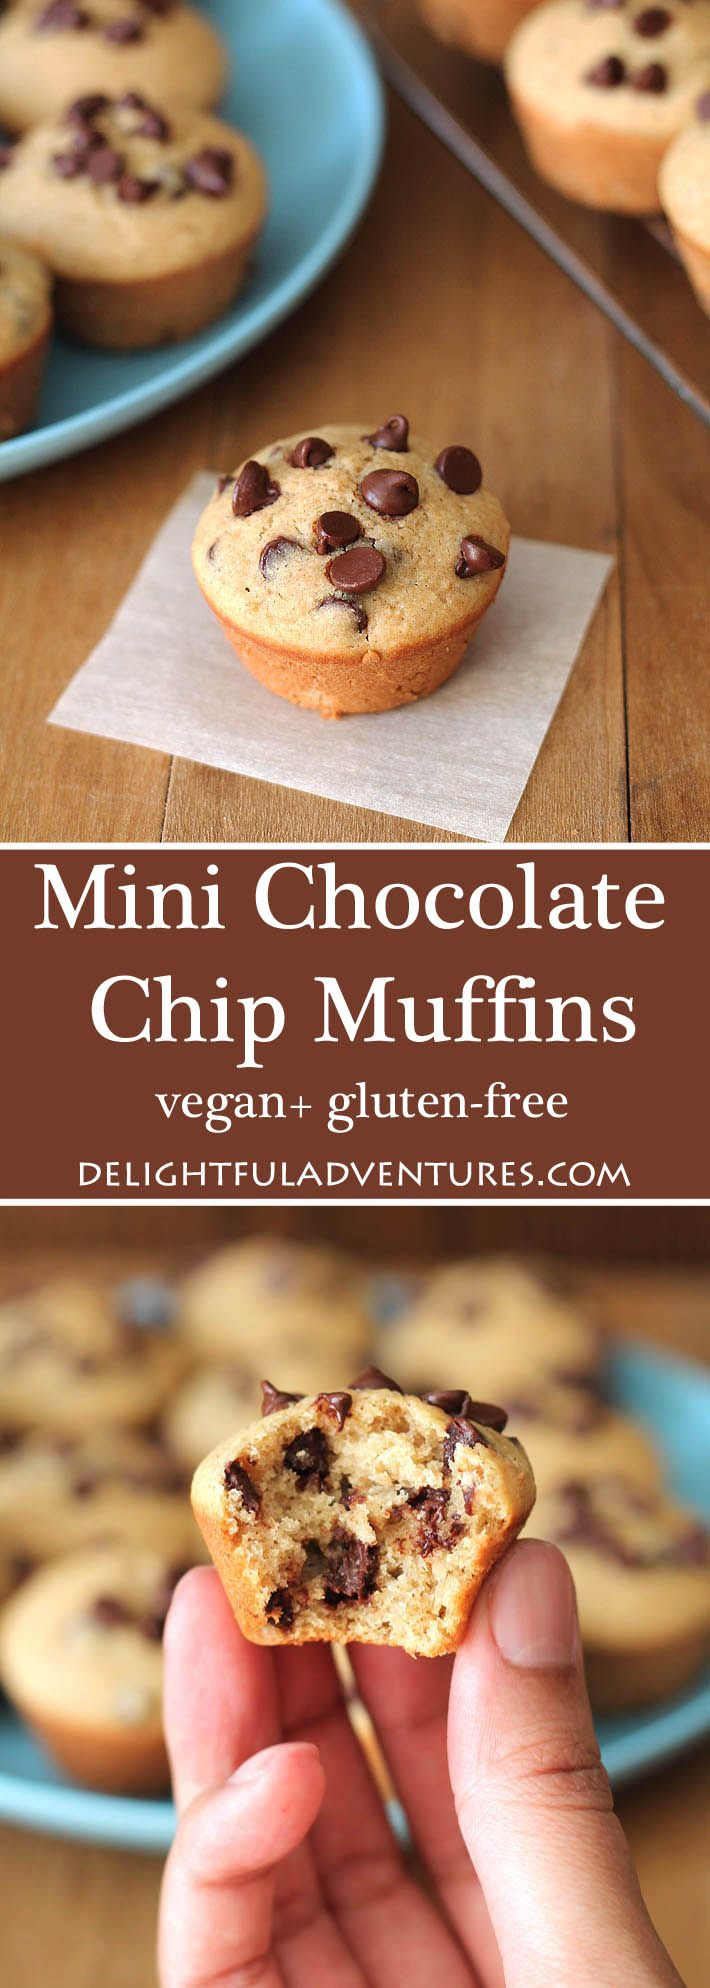 An easy recipe for gluten-free vegan Mini Chocolate Chip Muffins that you can have ready in just under 30 minutes! via @gwenleron